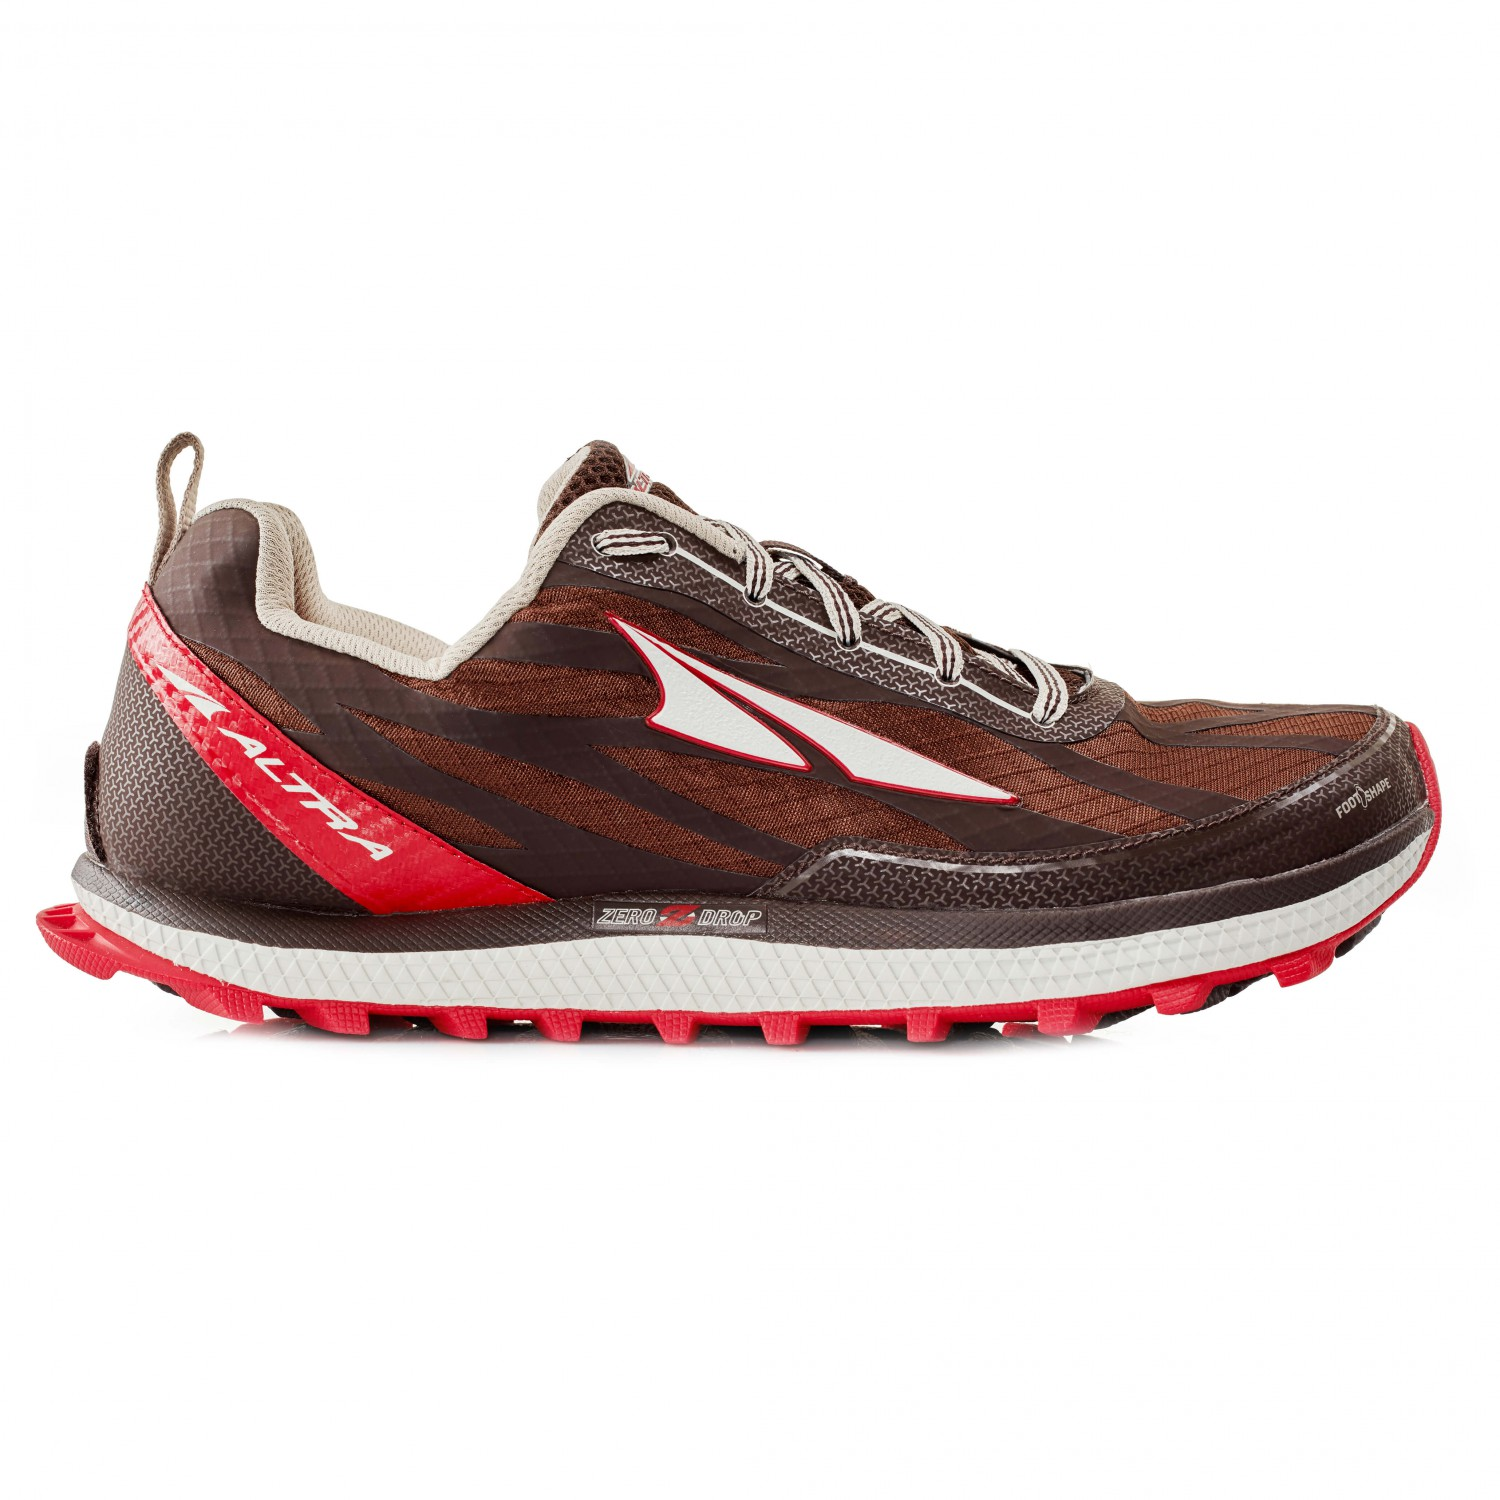 Where Can I Buy Altra Shoes